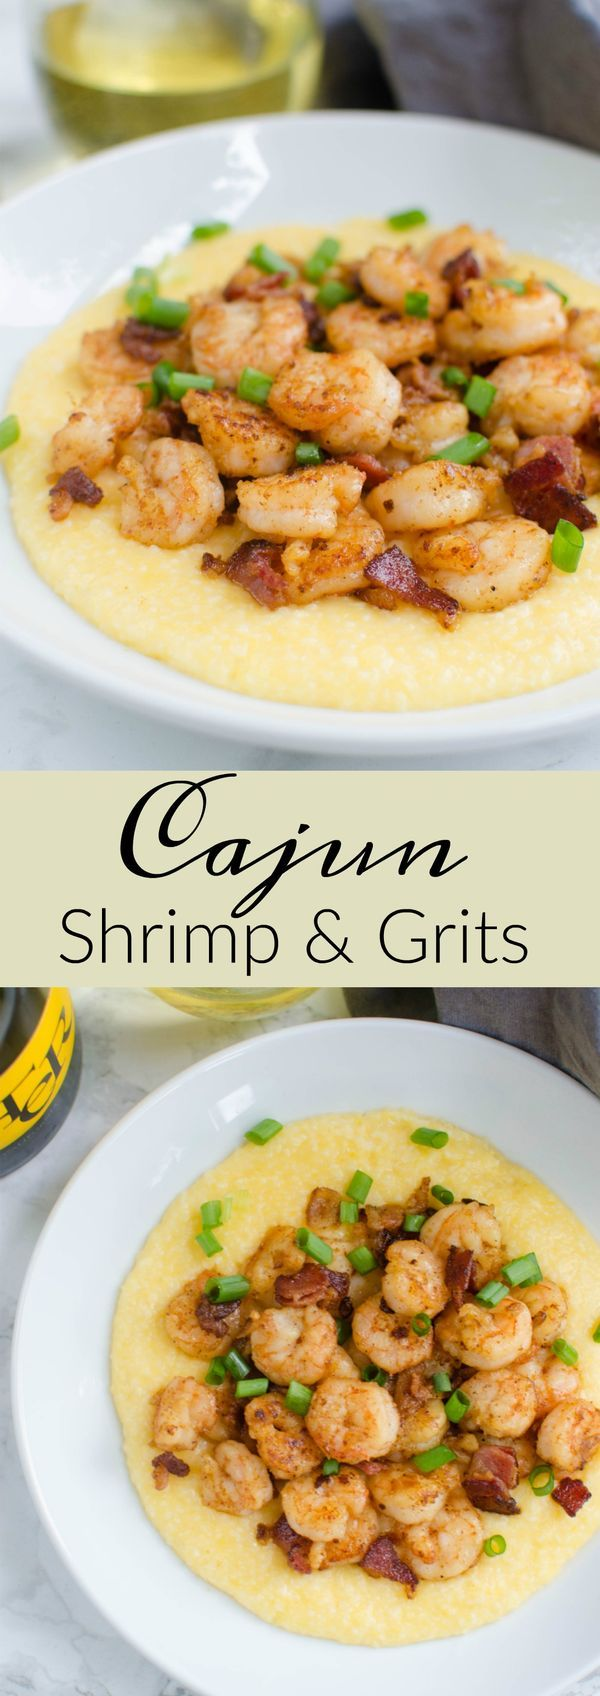 This Cajun Shrimp and Grits is perfect for brunch and is a simple recipe that feels very decadent!